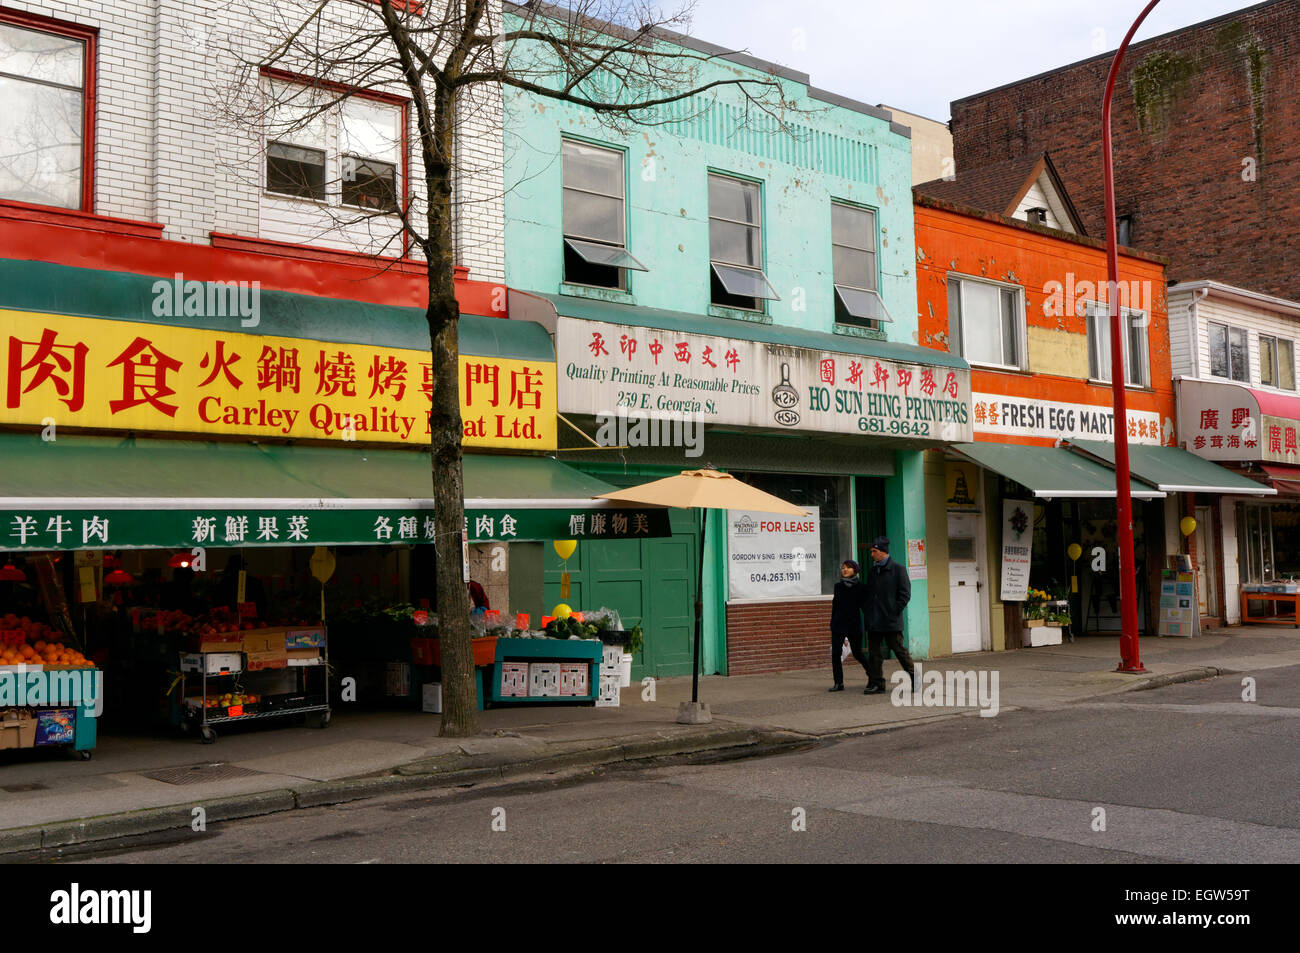 A couple walking past colourful storefronts on Keefer Street in Chinatown, Vancouver, BC, Canada - Stock Image